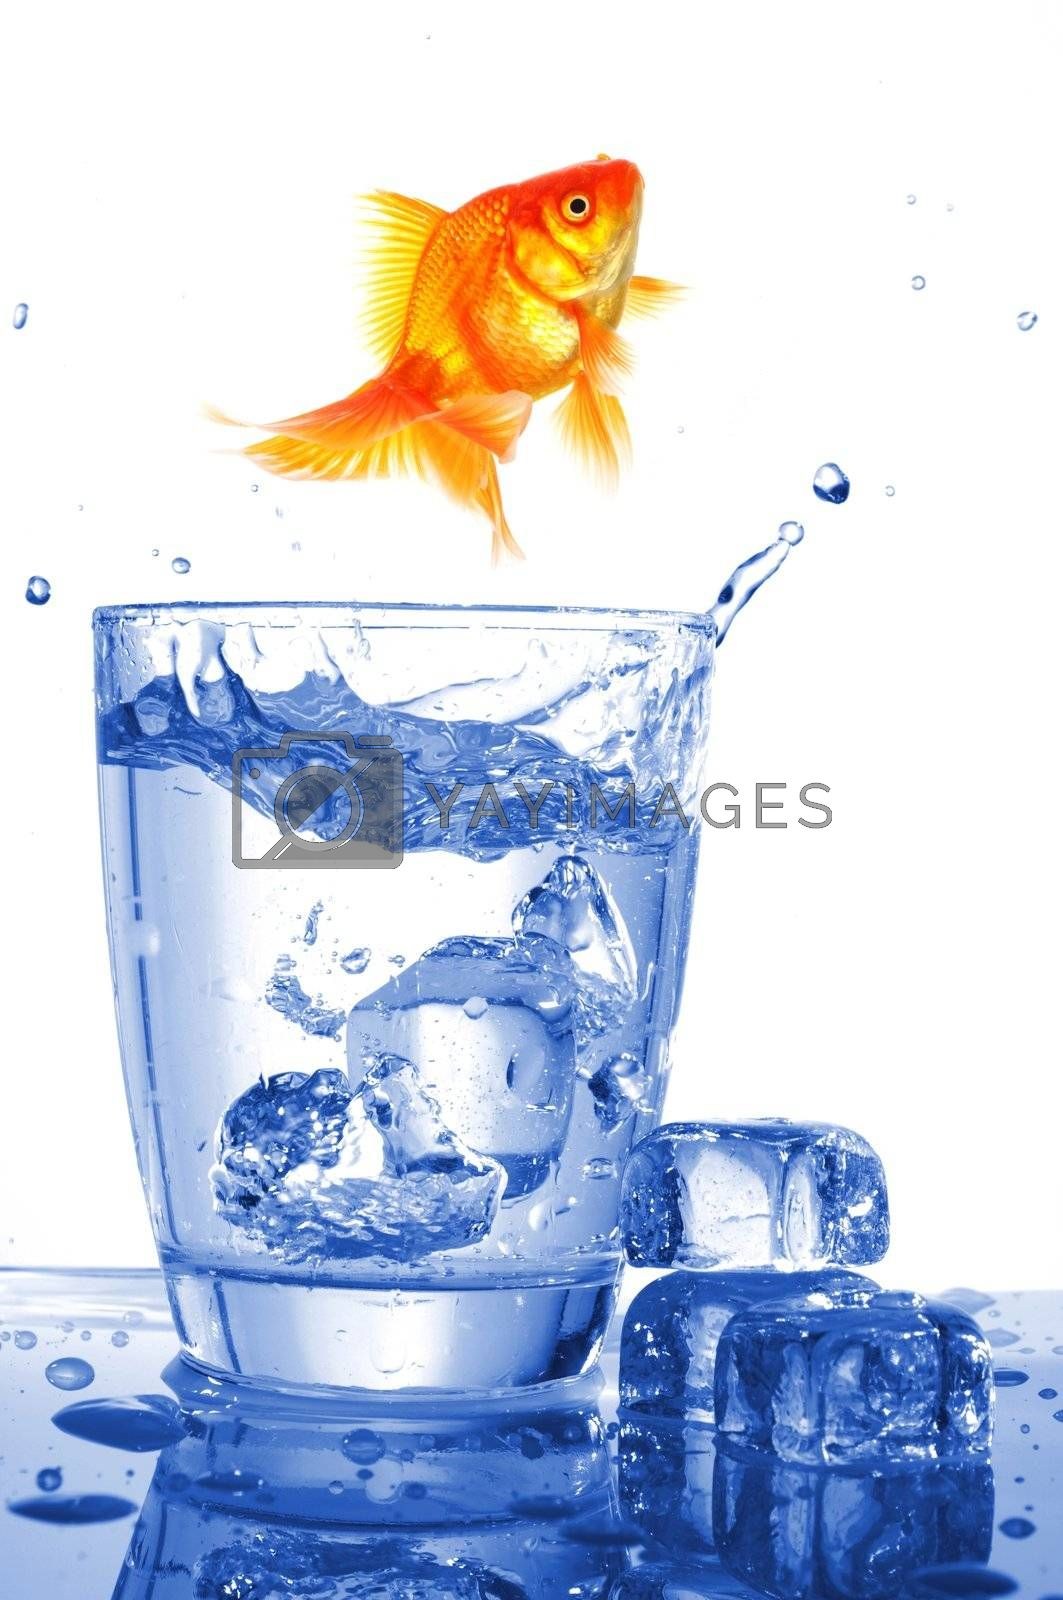 Royalty free image of goldfish in glass water by gunnar3000